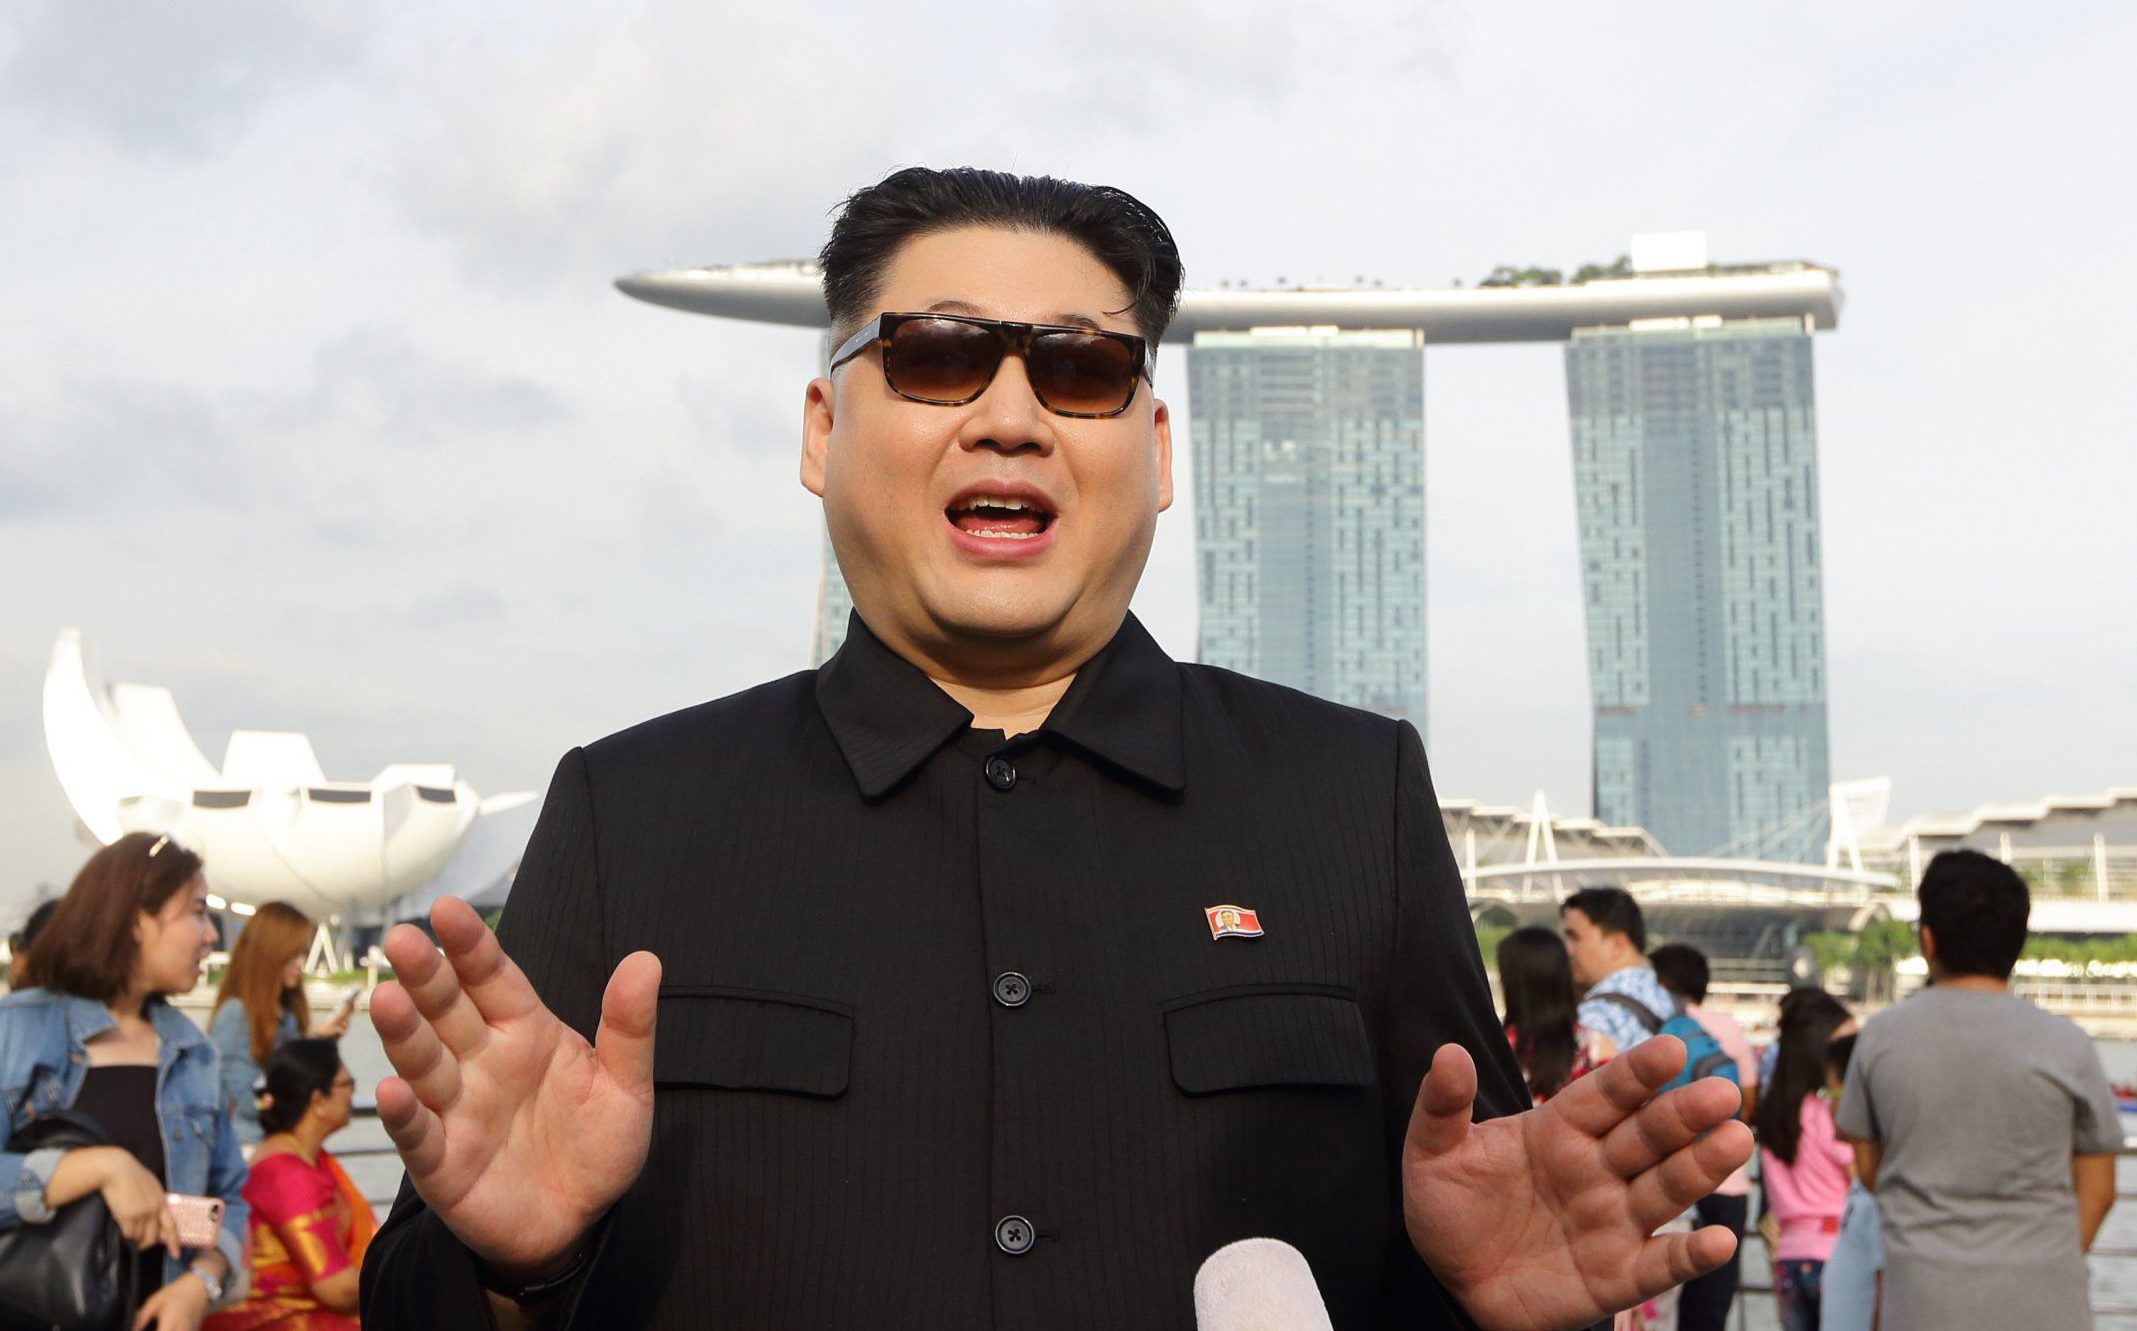 SINGAPORE - MAY 27: A Kim Jong Un impersonator, Howard X gives an interview at Merlion Park on May 27, 2018 in Singapore. The proposed North Korea-United States summit between U.S. President Donald Trump and North Korean leader Kim Jong Un was originally set for June 12, 2018 in Singapore, however, the U.S. has since officially backed out of the summit. (Photo by Suhaimi Abdullah/Getty Images)